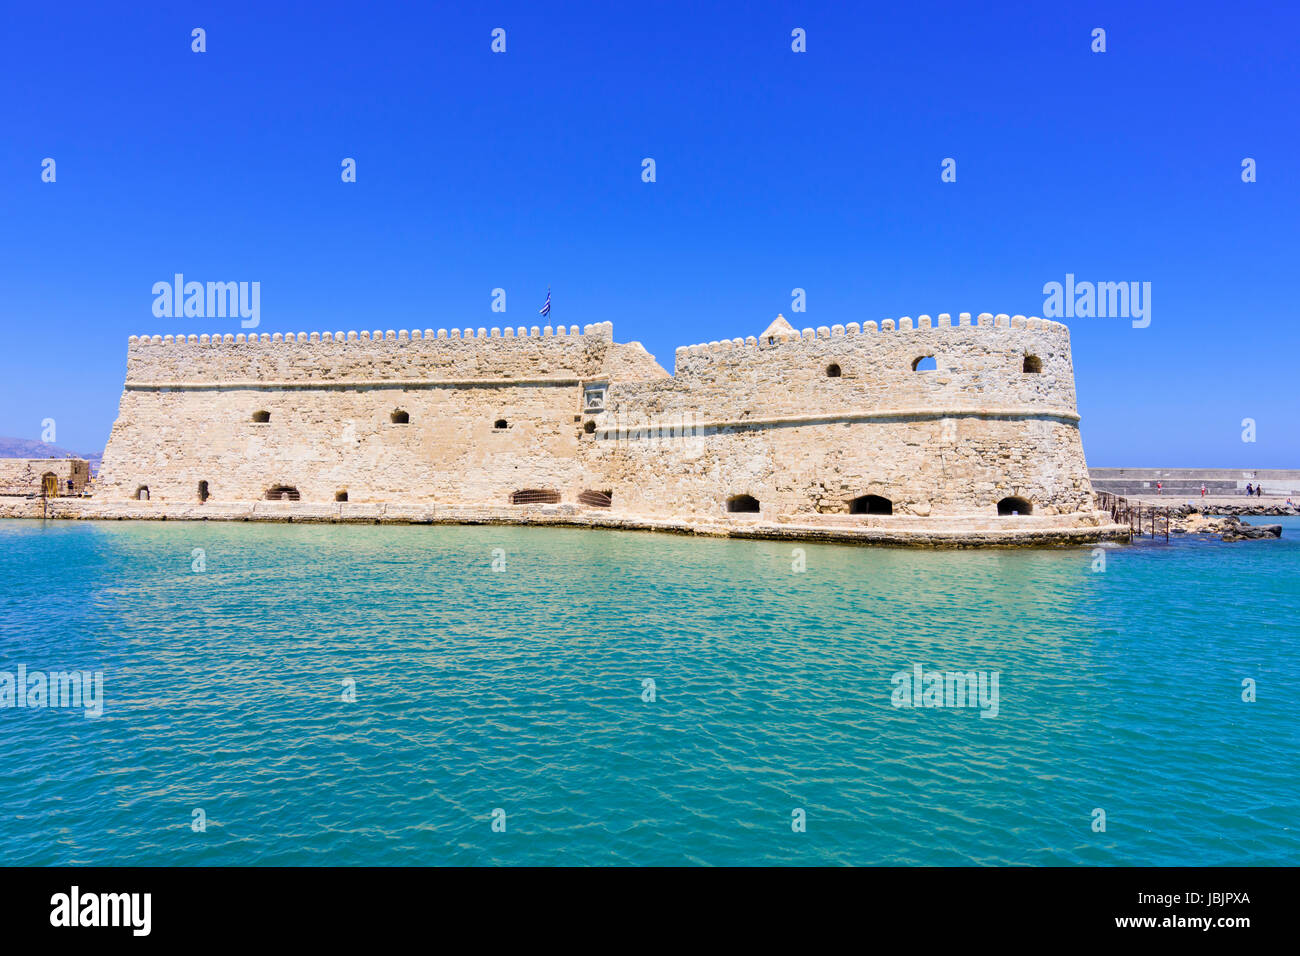 The Venetian Castle of Iraklion known as the Koules Fortress, at the entrance to the old harbour of Heraklion, Crete, - Stock Image